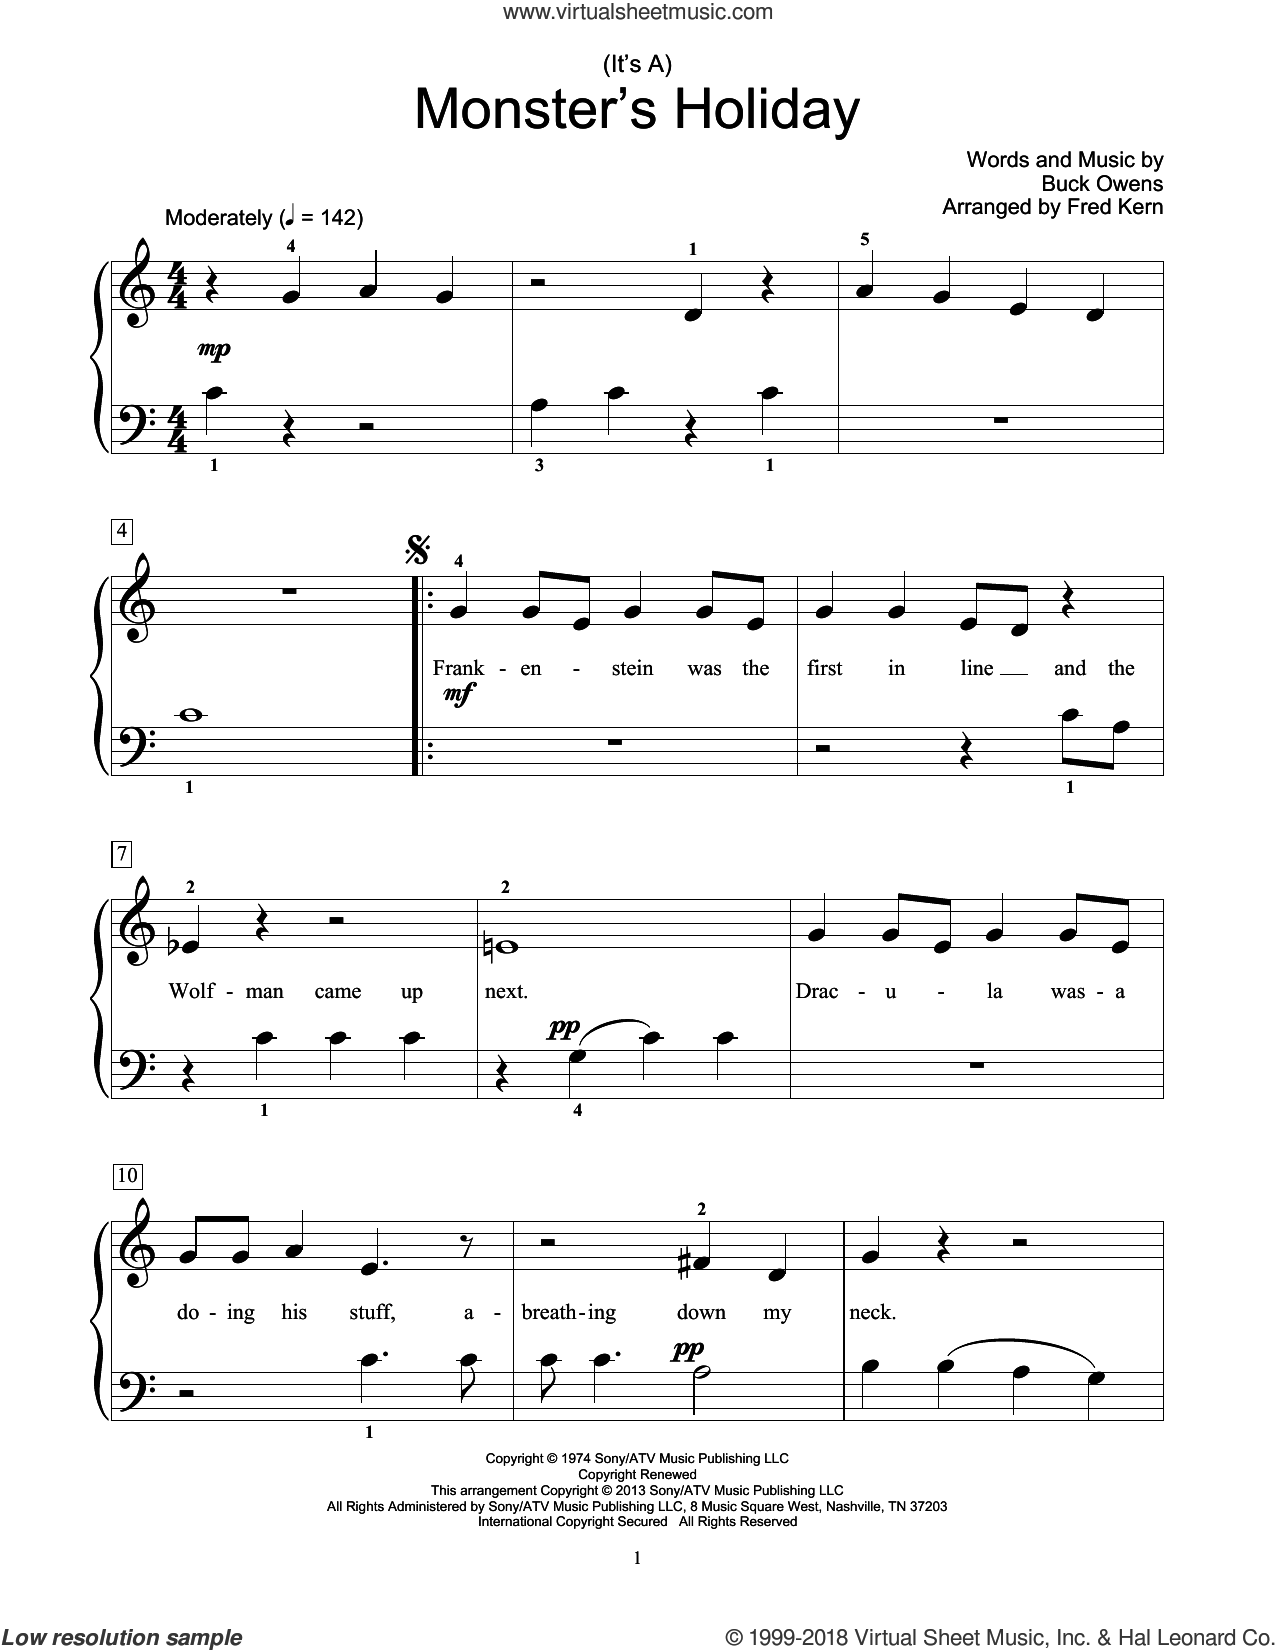 (It's A) Monster's Holiday sheet music for piano solo (elementary) by Fred Kern and Buck Owens. Score Image Preview.